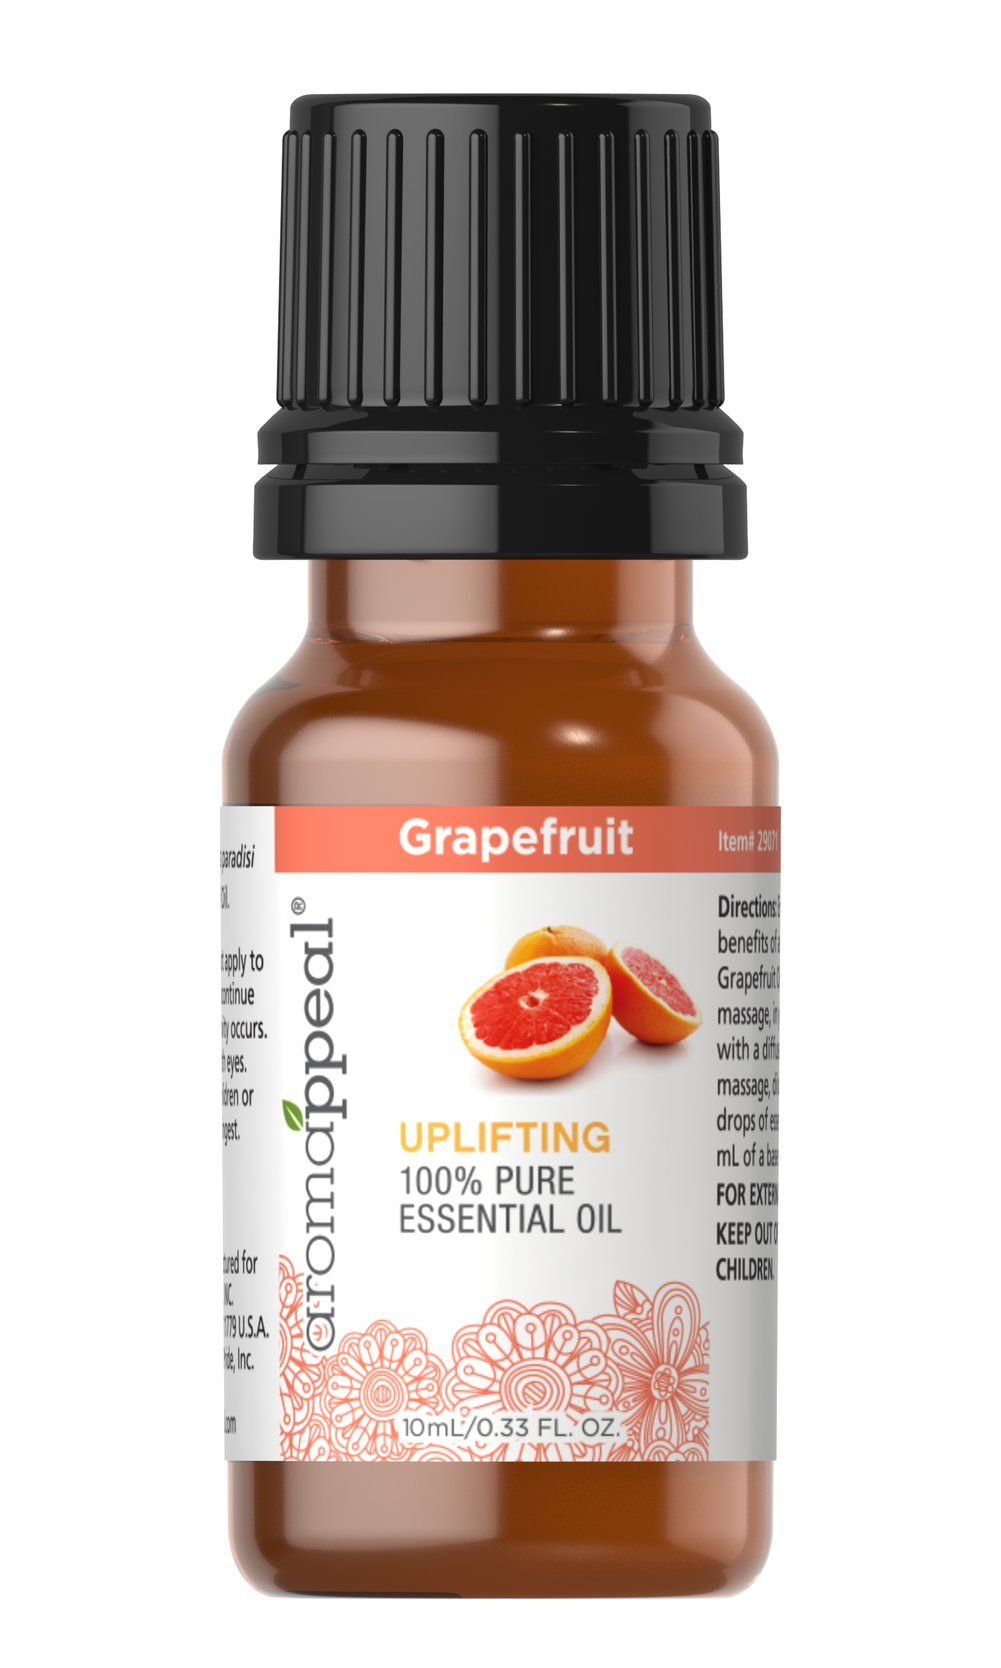 Grapefruit 100% Pure Essential Oil